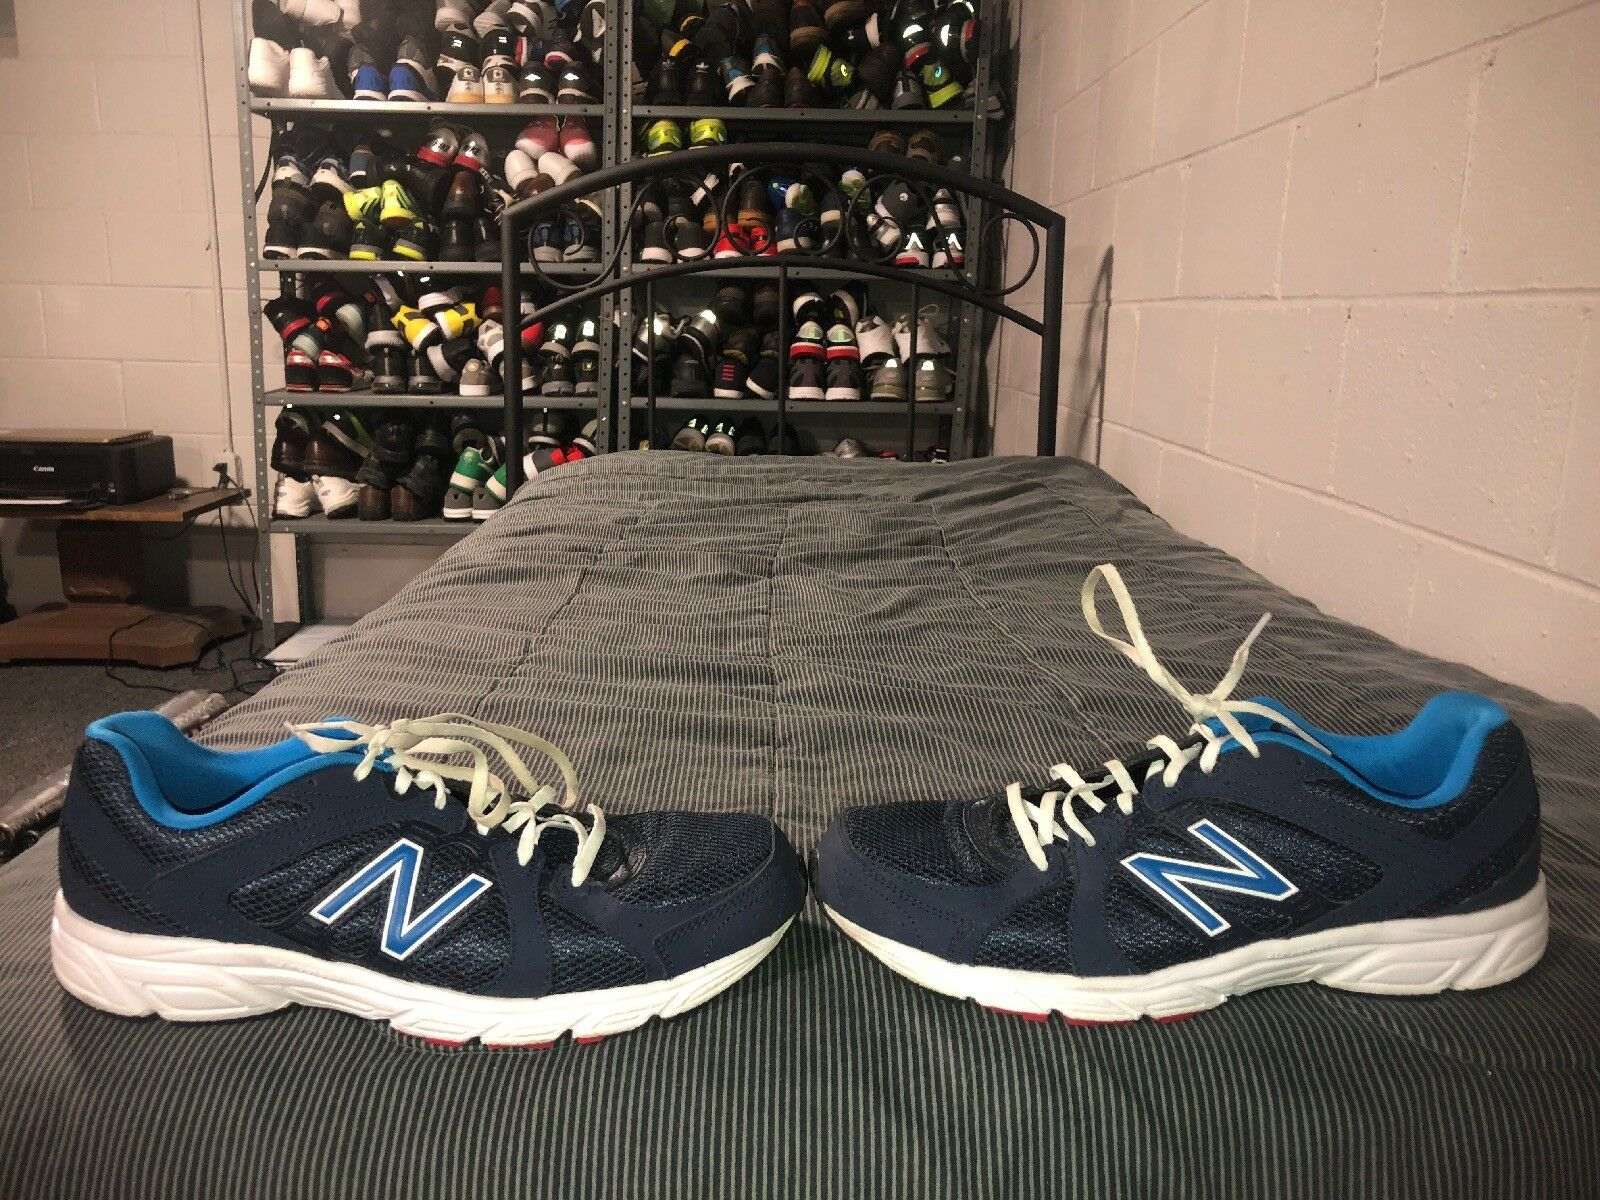 New Balance 401 Mens Athletic Running Training shoes Size 11 bluee White